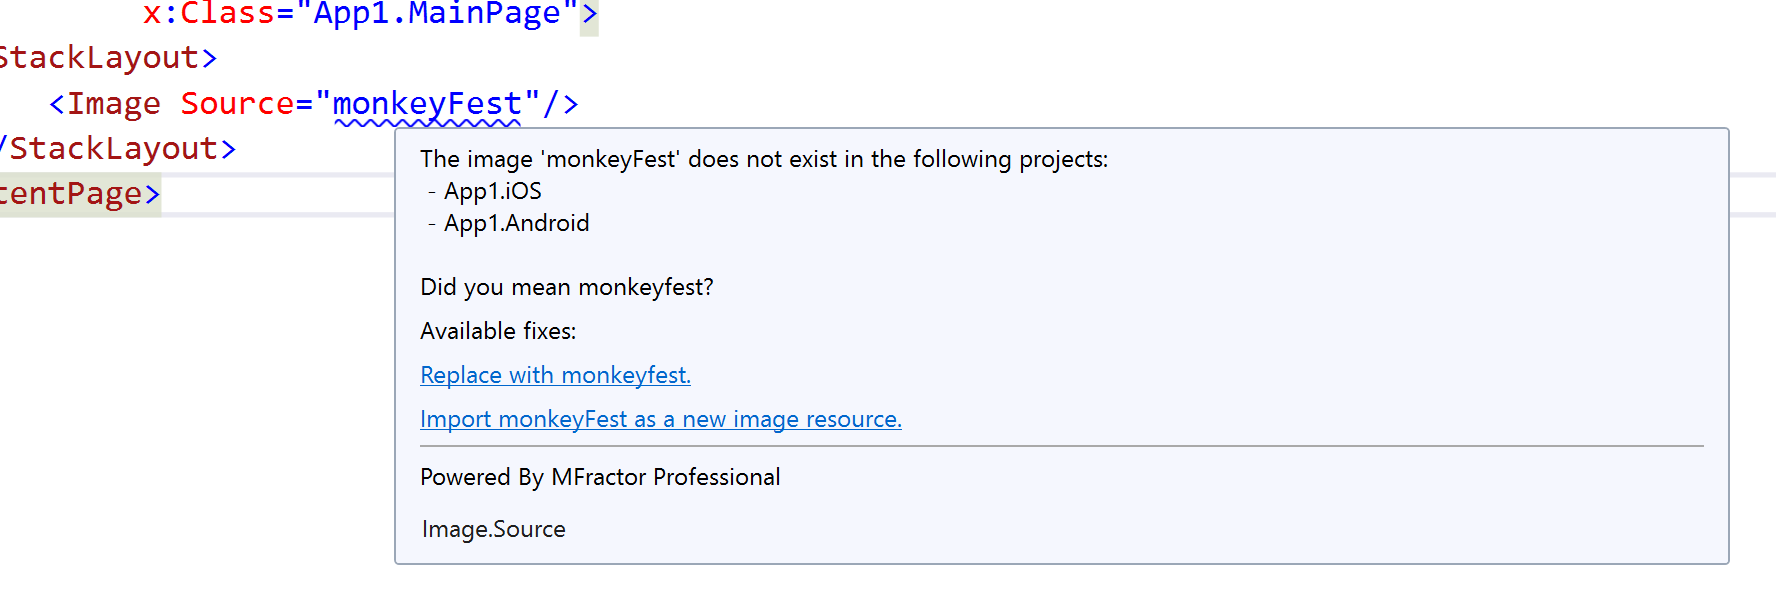 MFractor detecting a missing image asset and offering several code fixes to resolve it